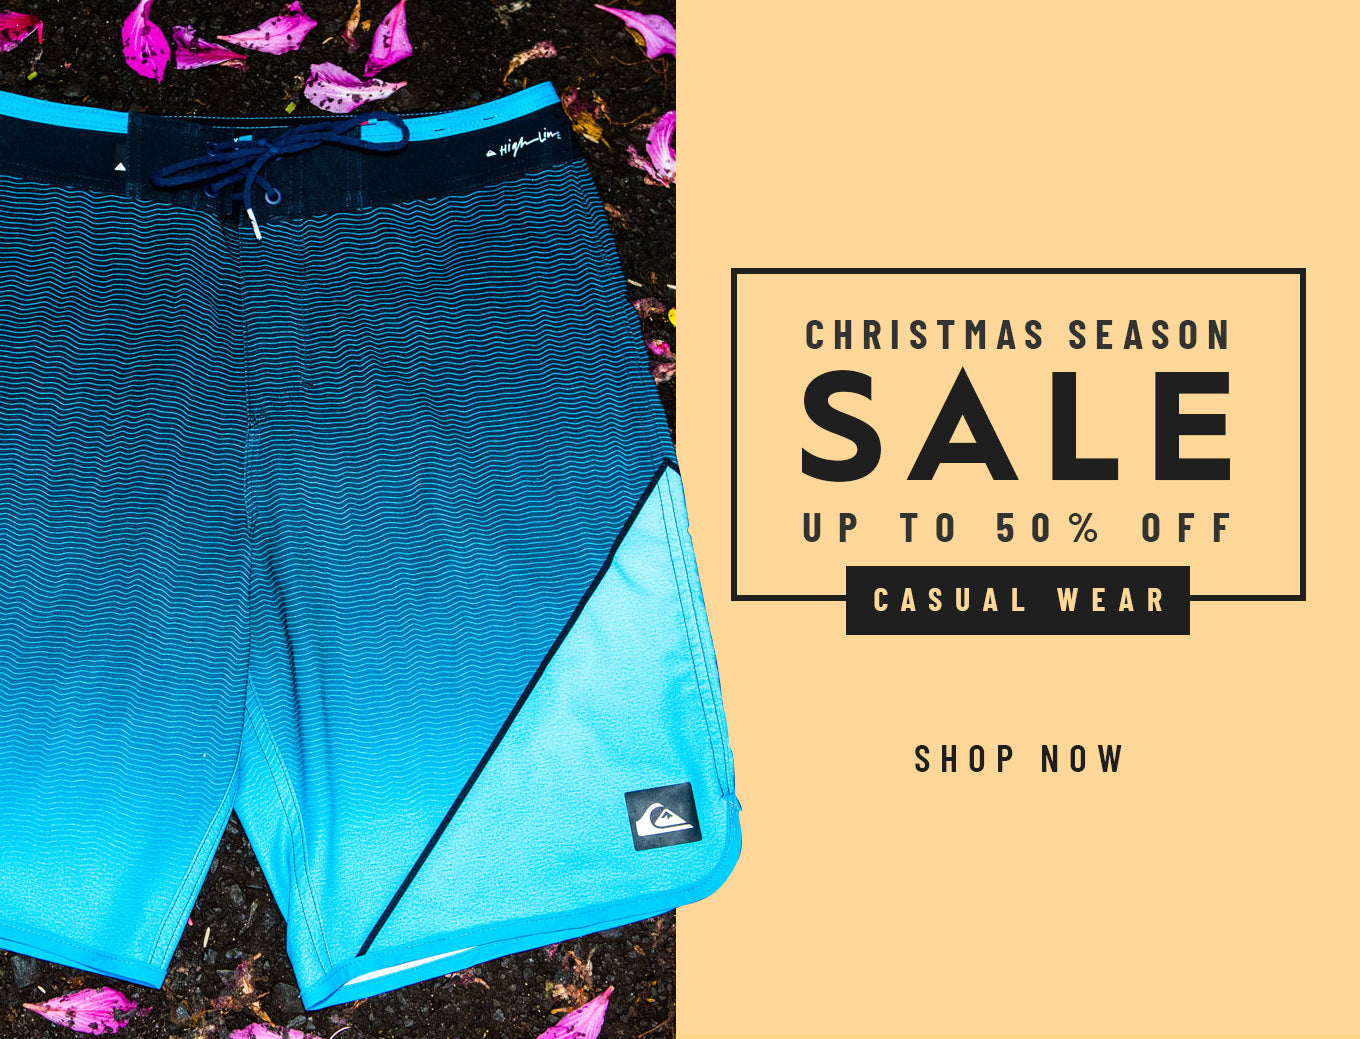 Origin Boardshop Christmas Casual Wear Sale